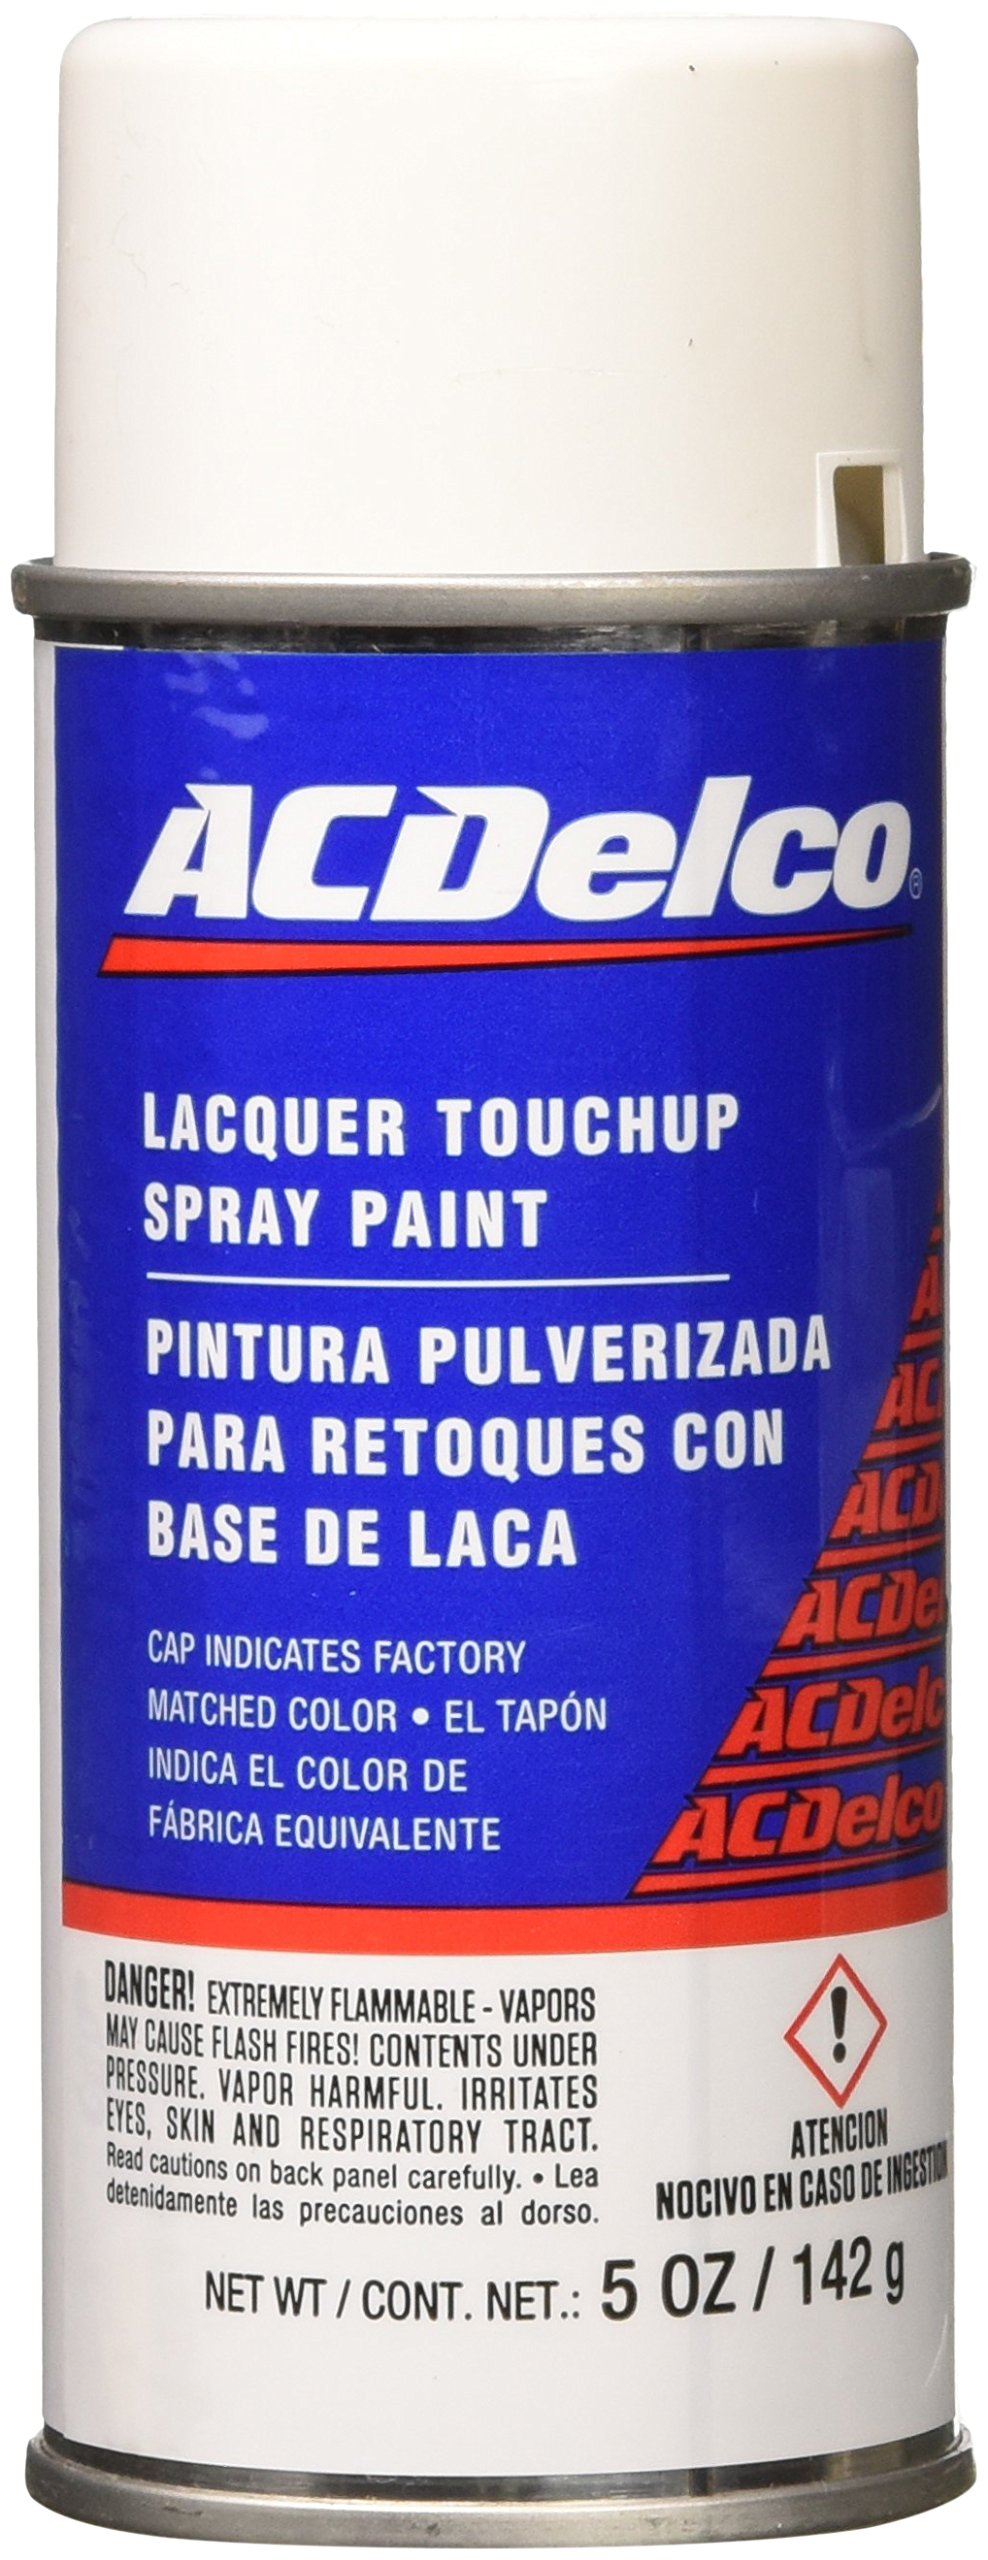 ACDelco 19354941 Summit White/Olympic White (WA8624) Touch-Up Paint - 5 oz Spray by ACDelco